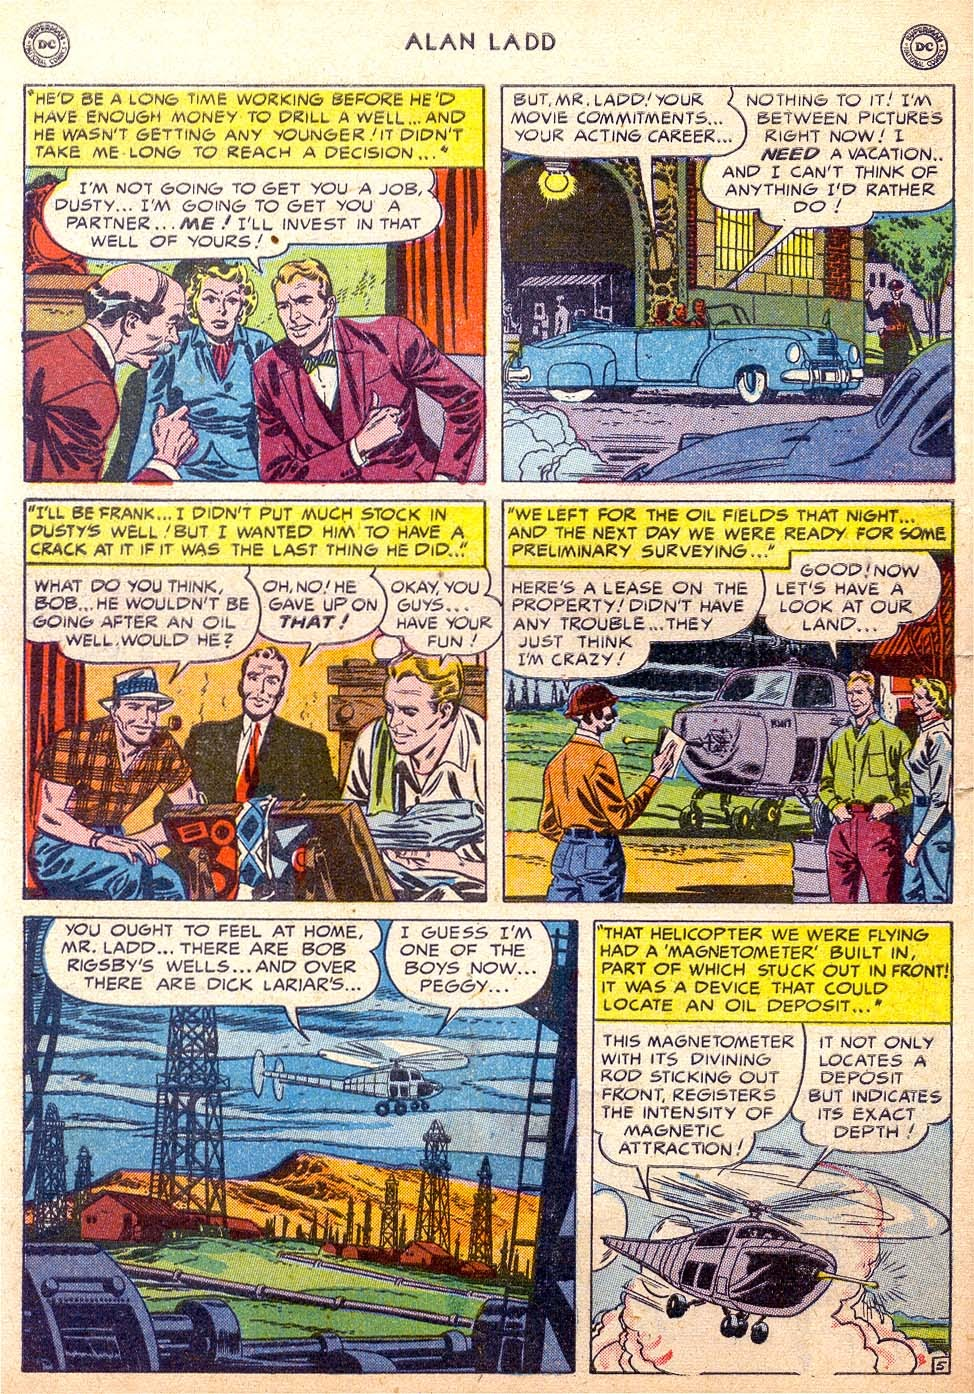 Adventures of Alan Ladd issue 4 - Page 44